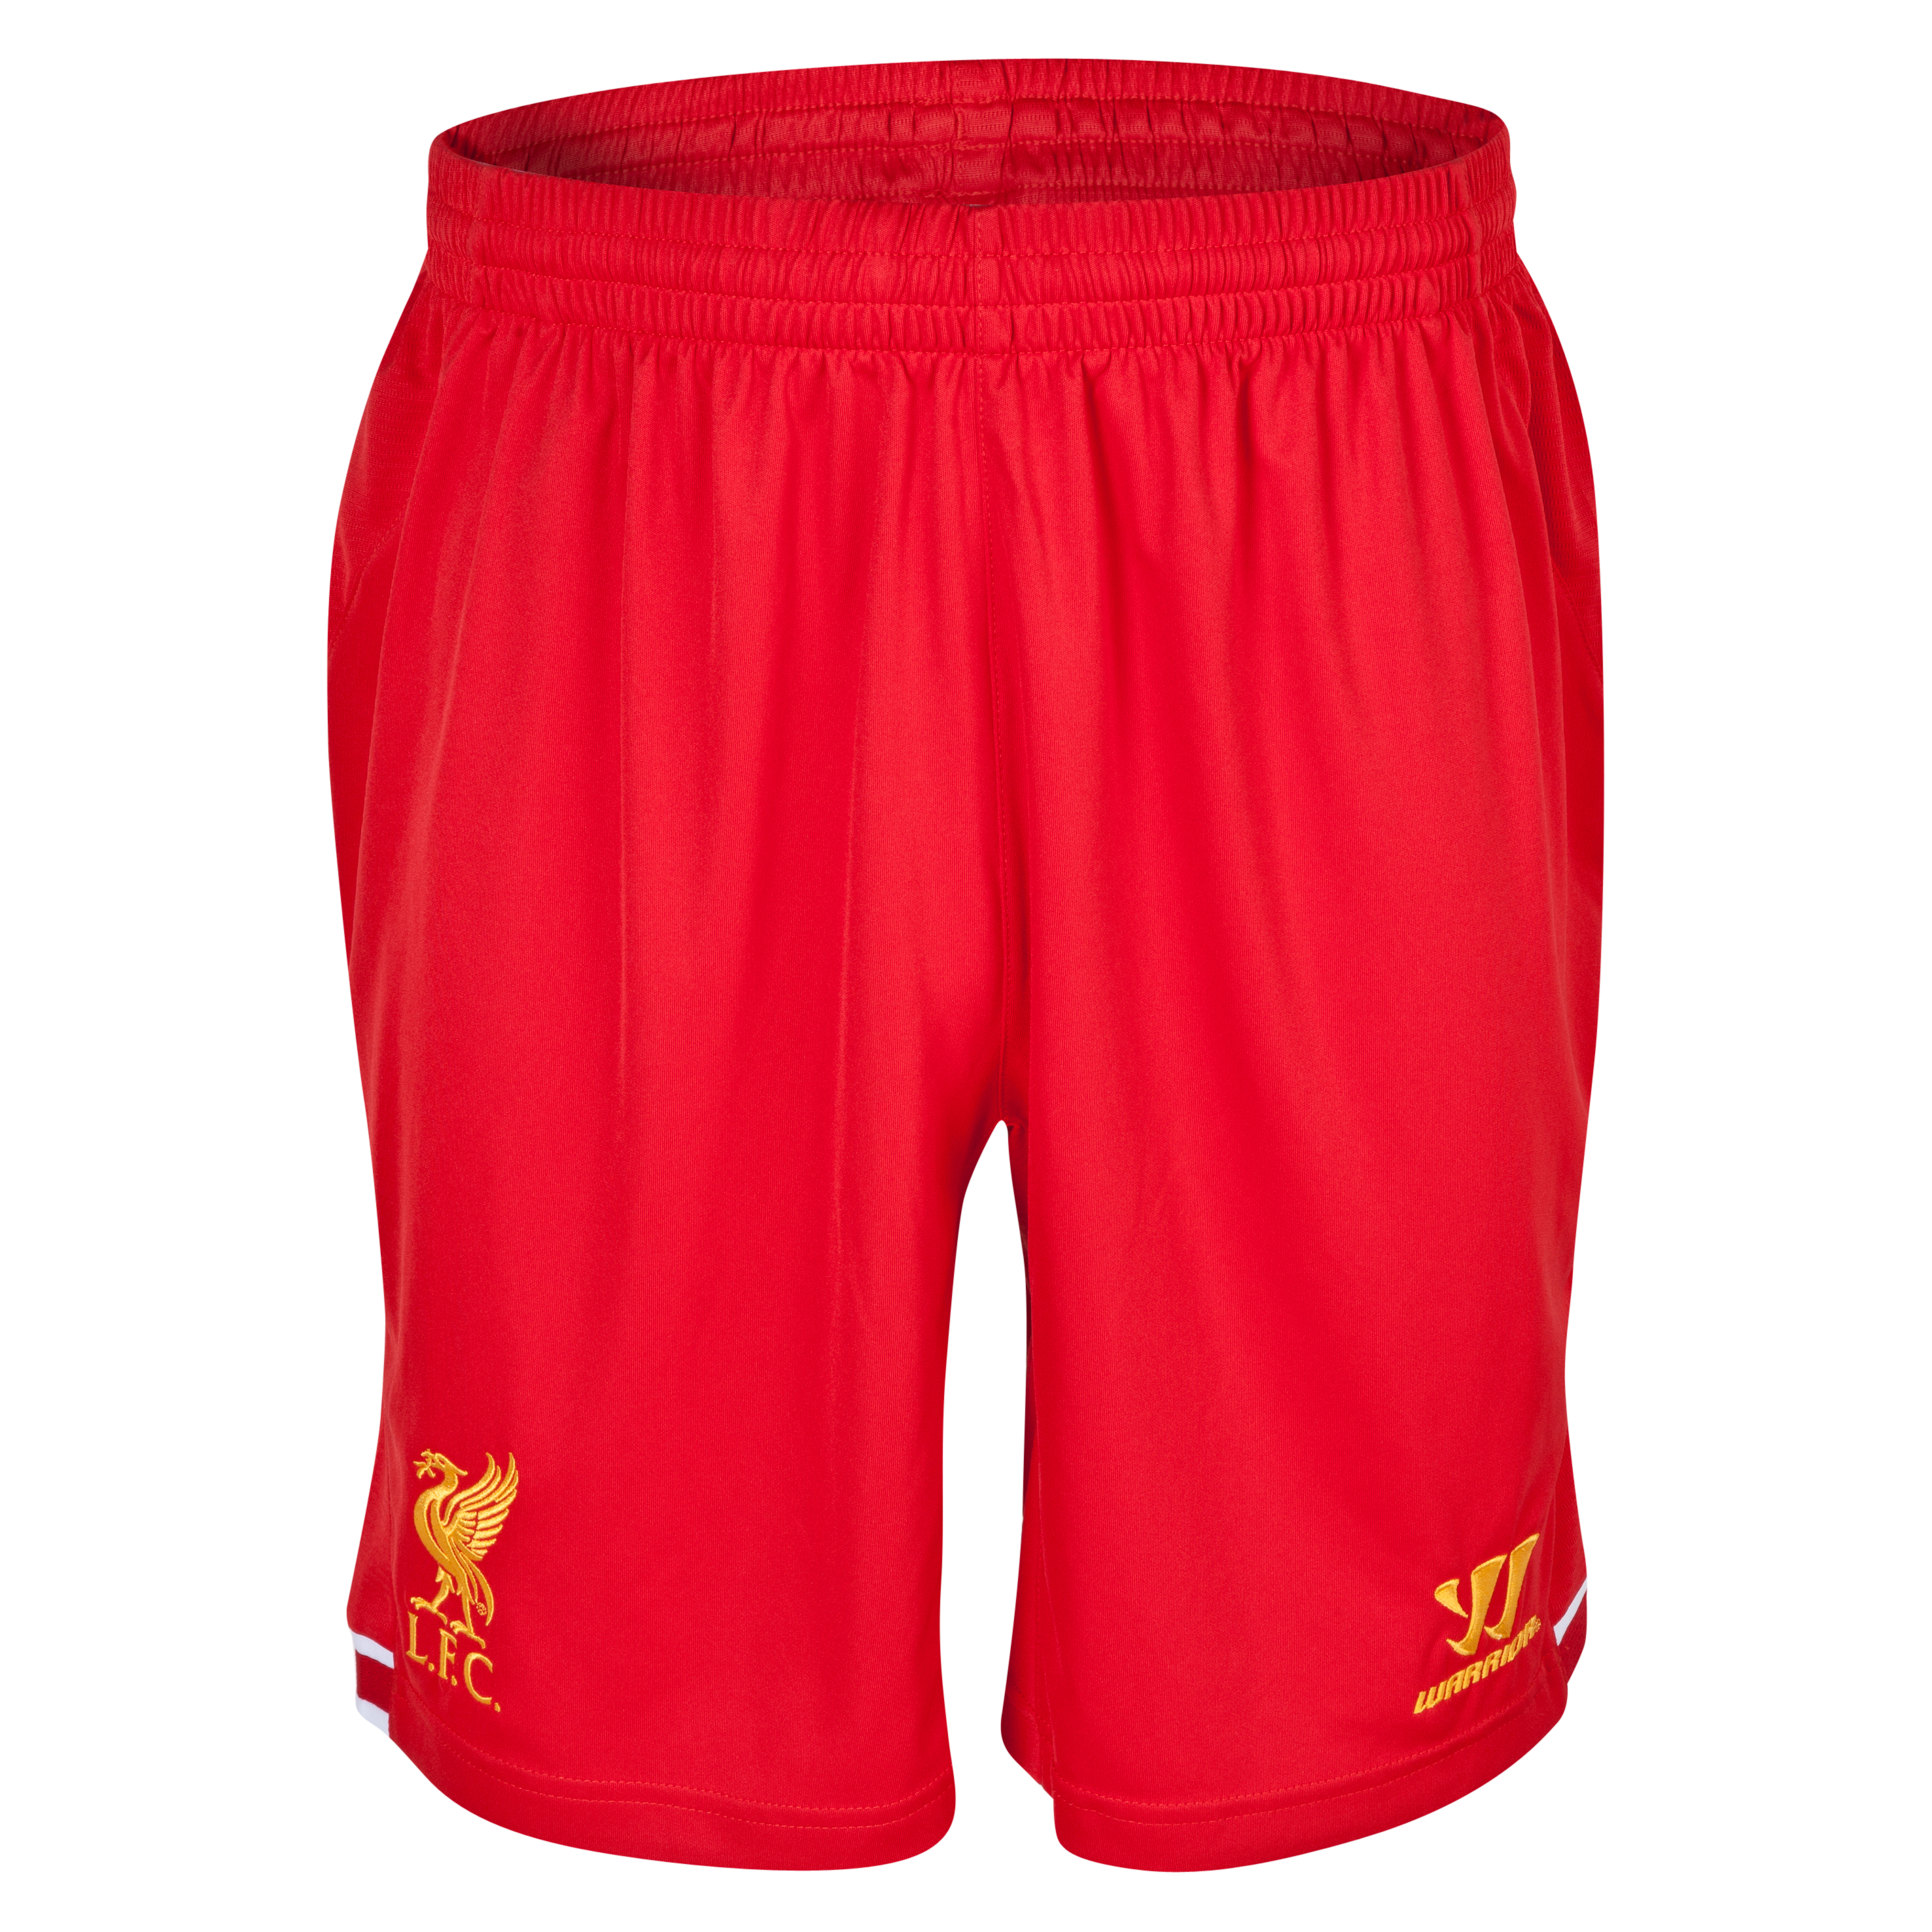 Liverpool Home Shorts 2013/14 - kids